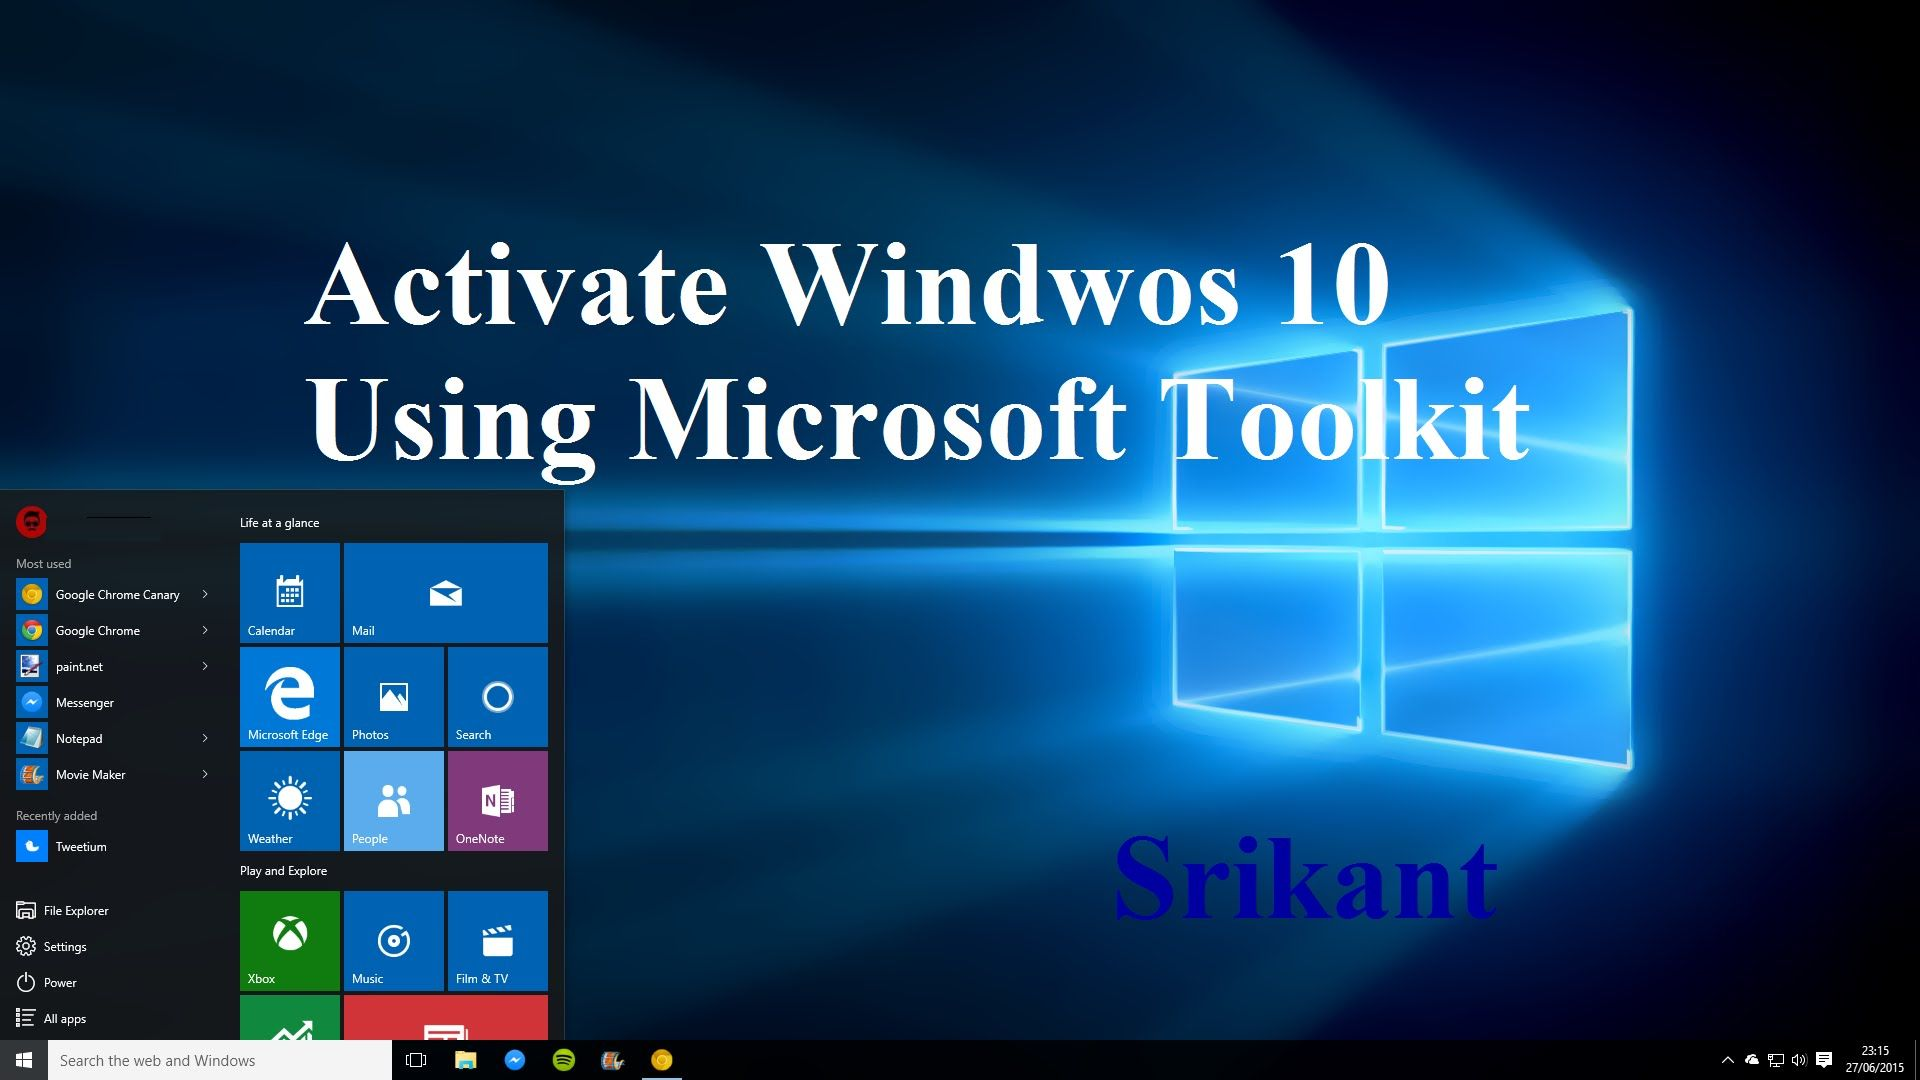 Windows 10 activate with microsoft toolkit sfb activate permanently windows 10 using microsoft toolkit ccuart Choice Image